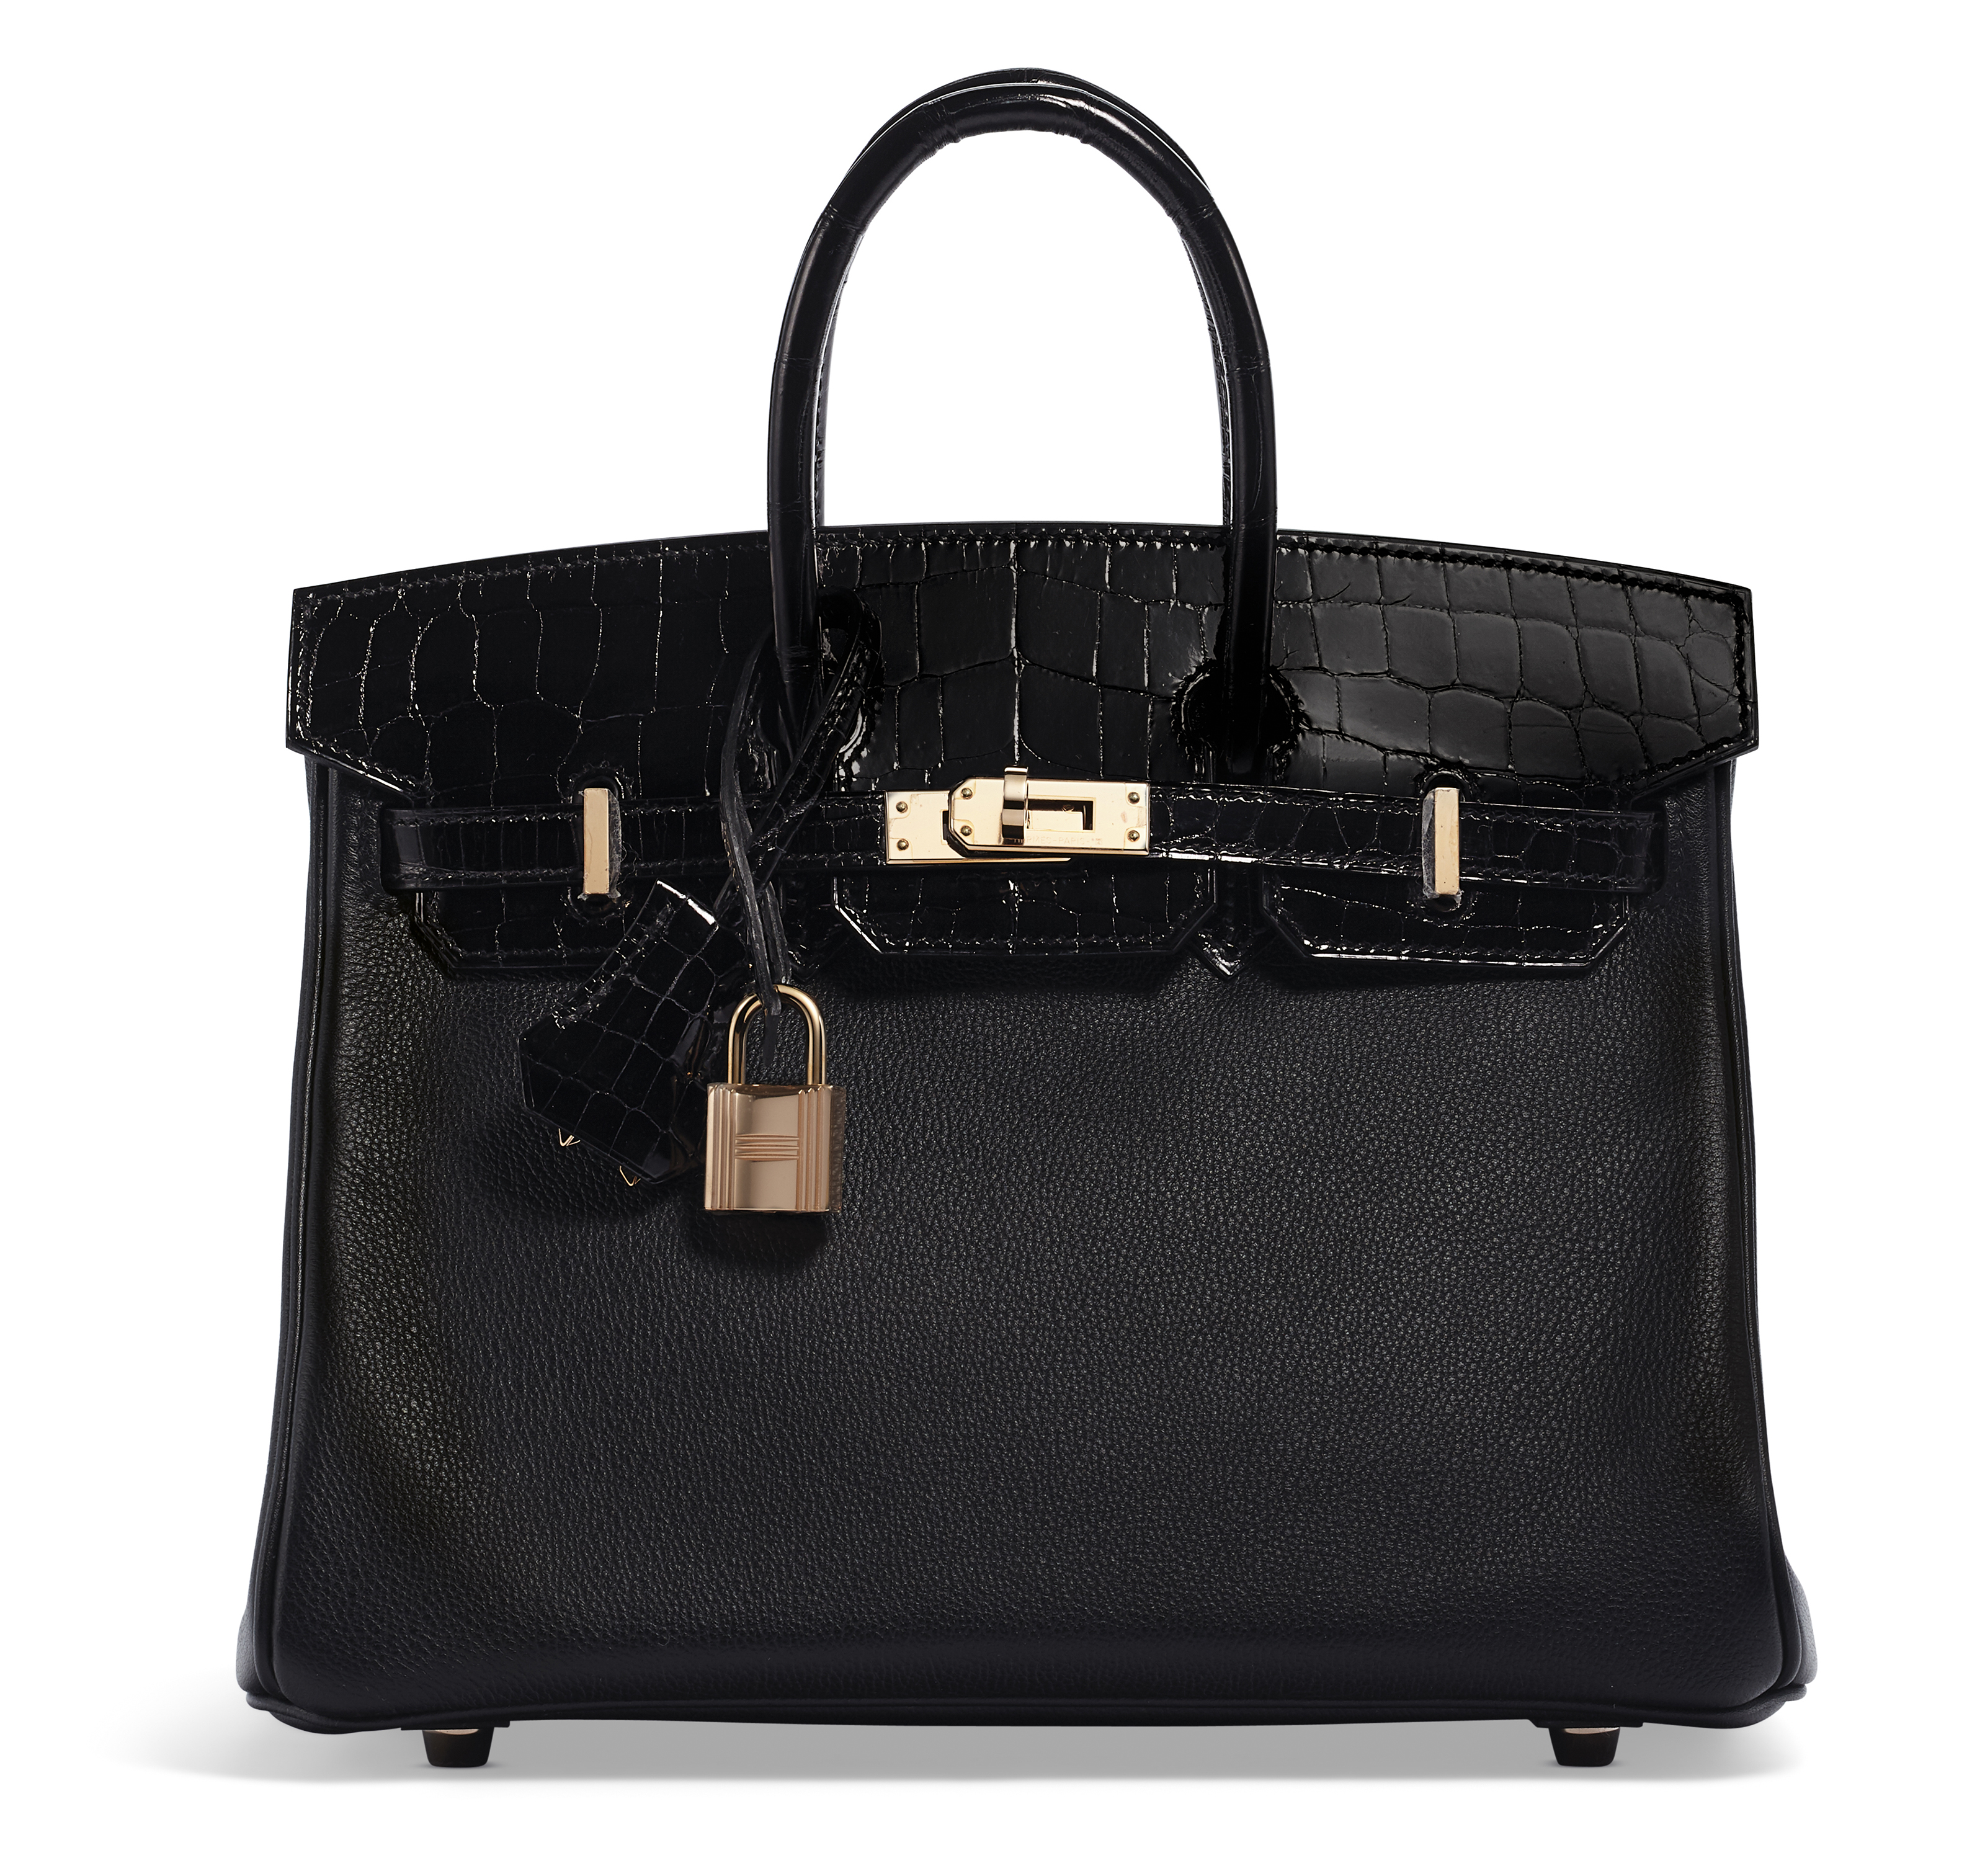 A LIMITED EDITION SHINY BLACK NILOTICUS CROCODILE & BLACK NOVILLO LEATHER TOUCH BIRKIN 25 WITH ROSE GOLD HARDWARE